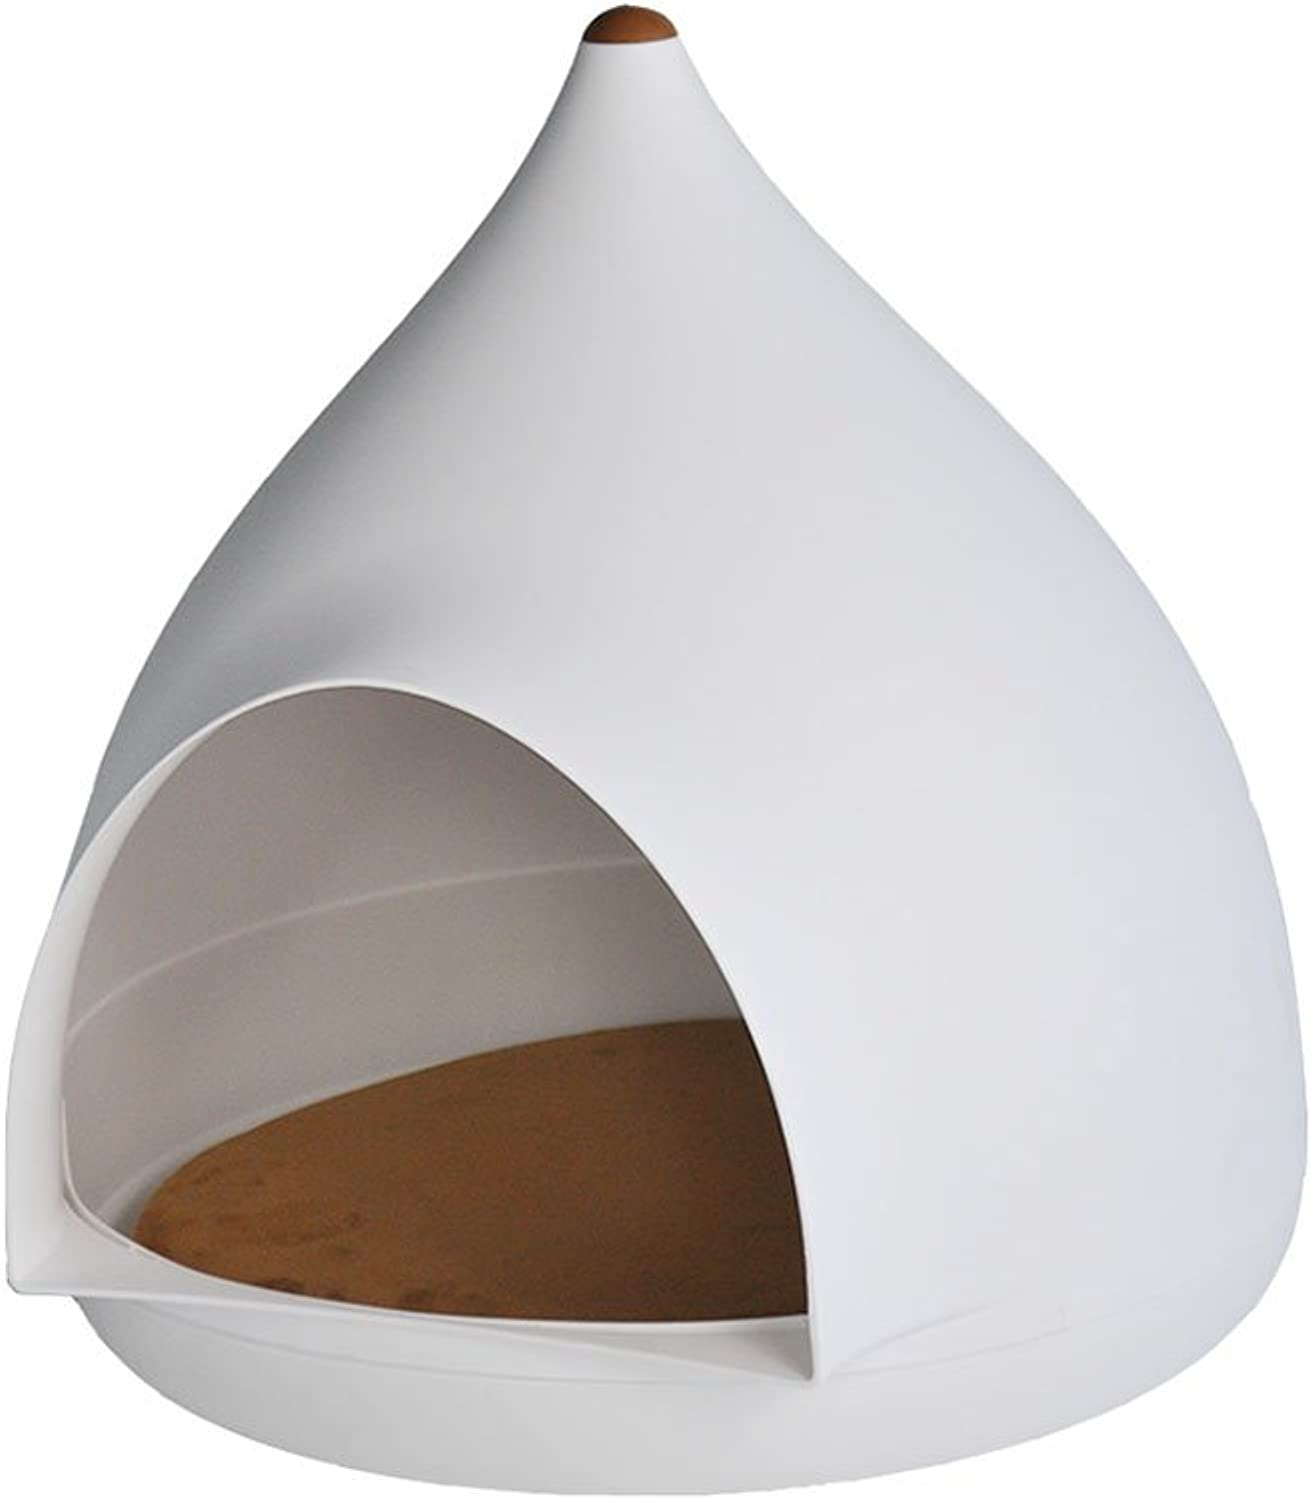 FH The New Water Droplets Cat Nest Net Red Cat Nest Summer Four Seasons General Purpose Cat House Cat House Kennel Small Dog Closed Dog Houses